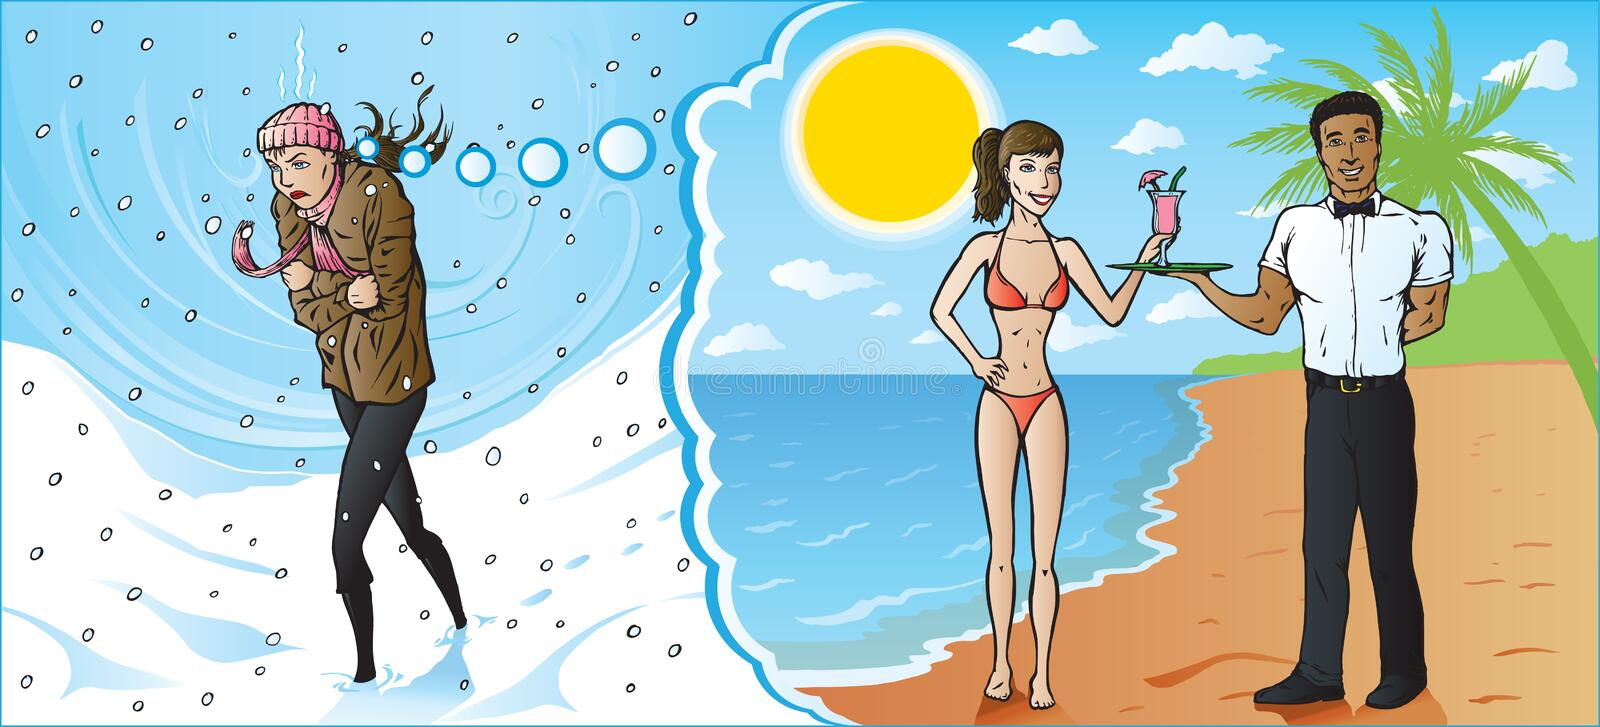 Freezing girl dreaming of a warm vacation. Poor girl walking and freezing, dreaming of a vacation down south stock illustration